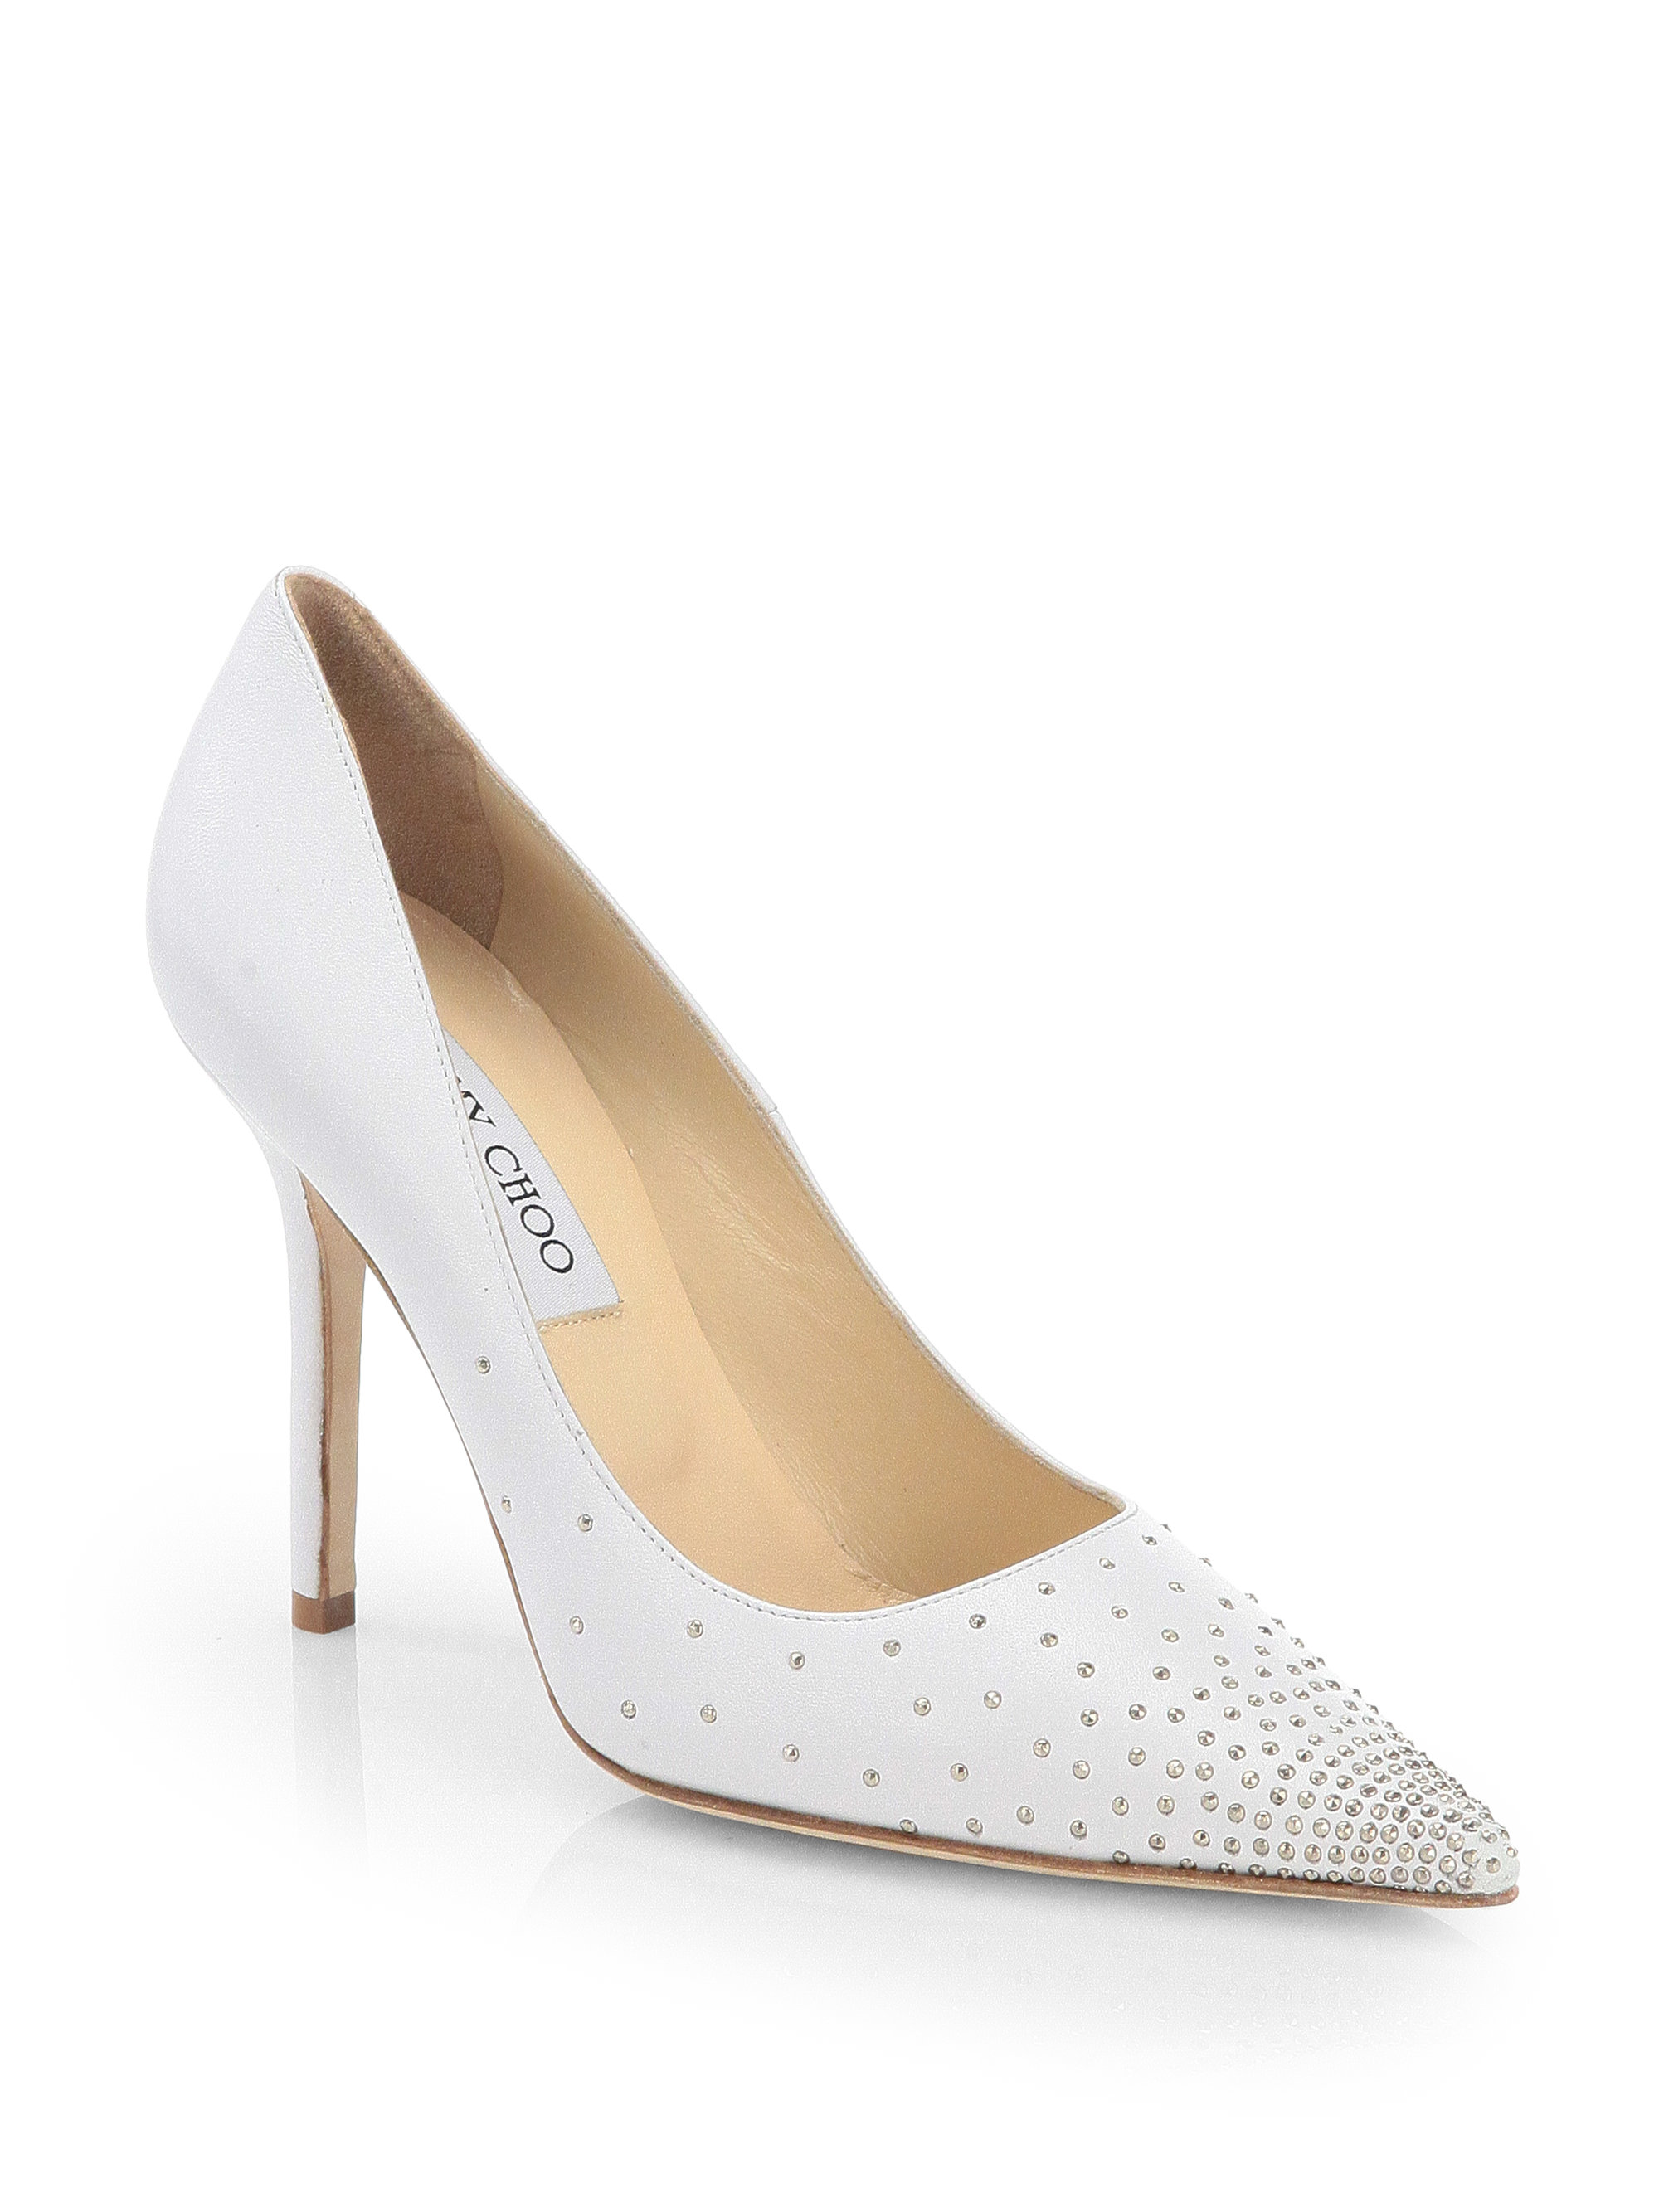 d559cebbea44 Gallery. Previously sold at  Saks Fifth Avenue · Women s Jimmy Choo Abel  Women s Round Toe Pumps ...